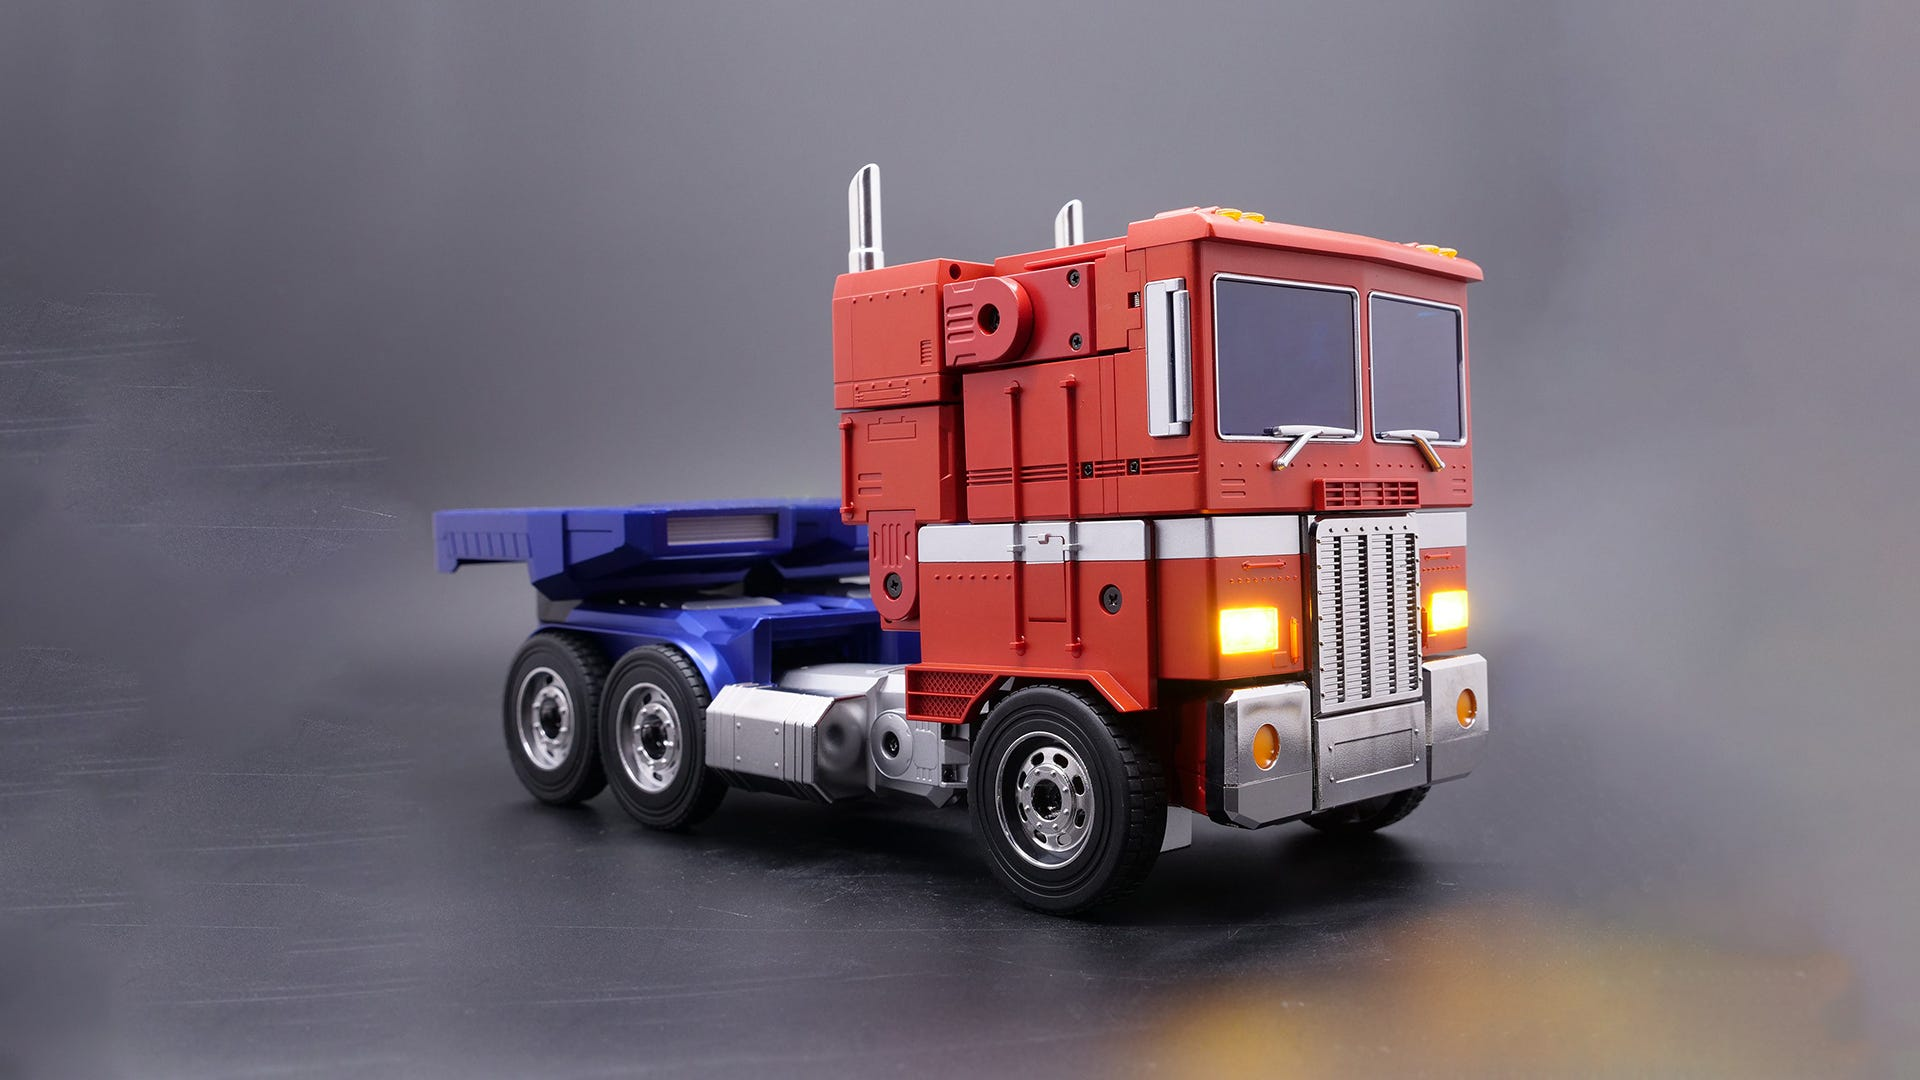 An Optimus Prime toy in truck form.